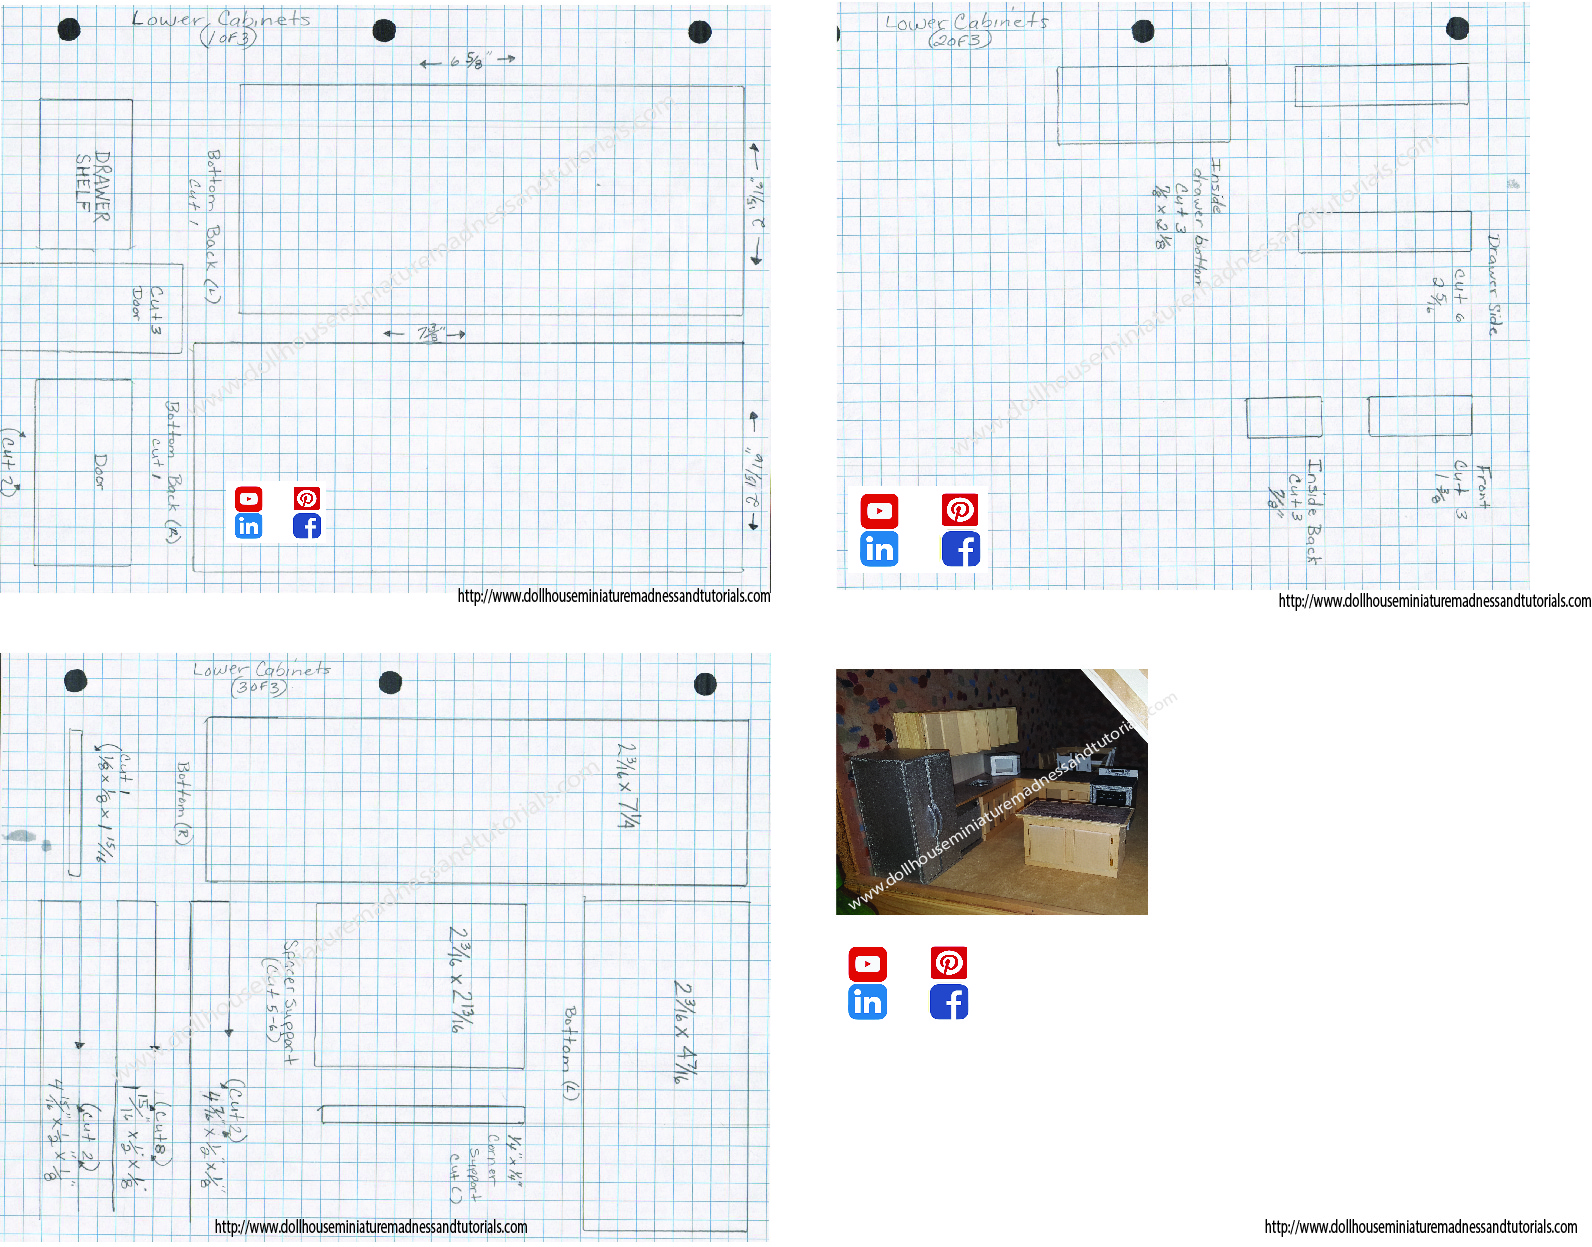 photo regarding Free Printable Dollhouse Furniture Patterns called Templates - Dollhouse Miniature Insanity and Tutorials